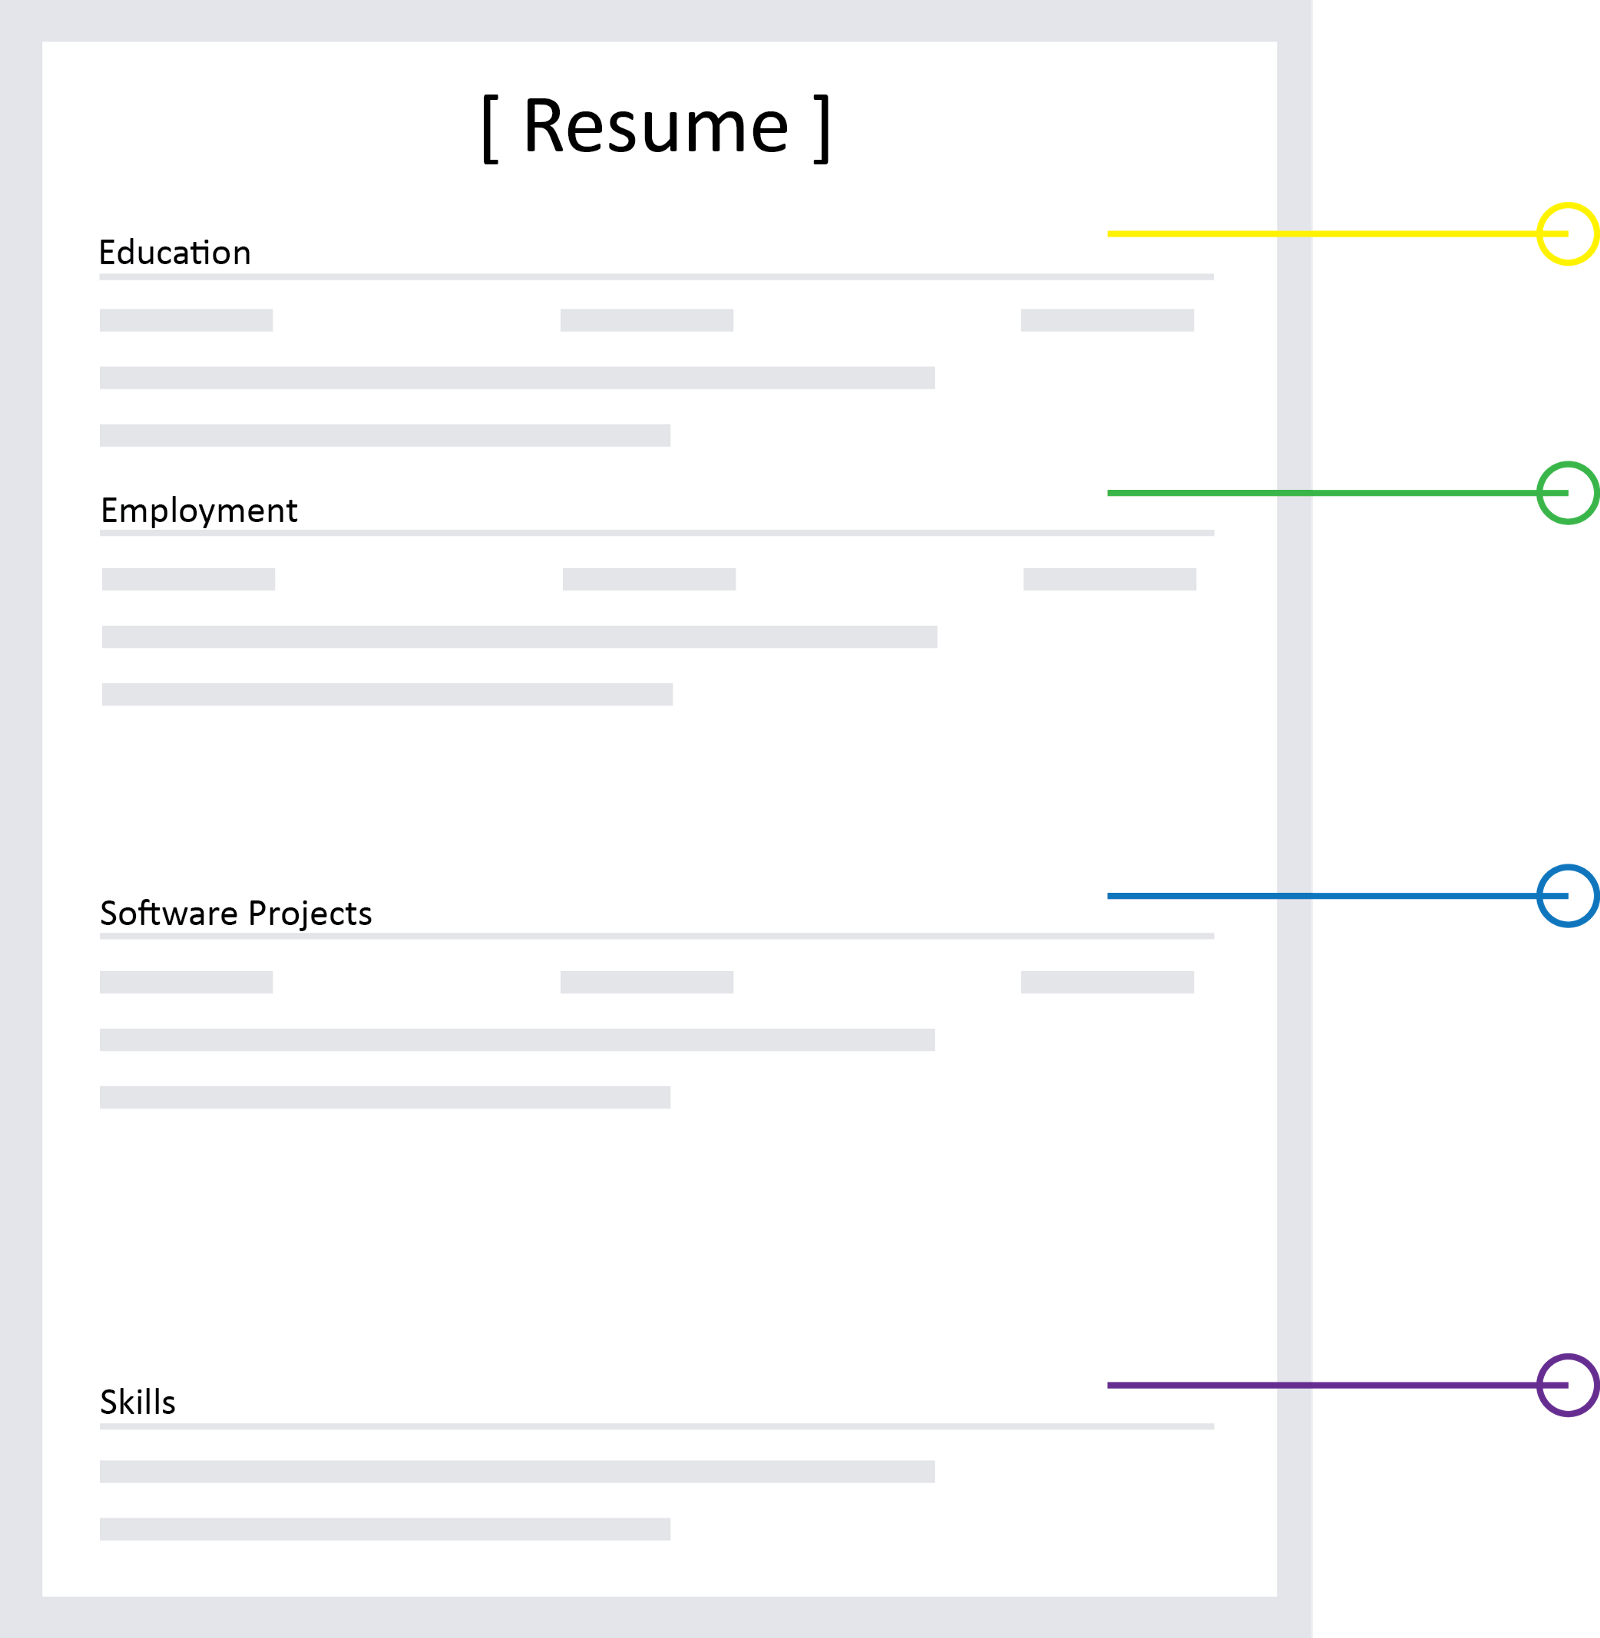 Resum Impressive How to write a killer Software Engineering résumé freeCodeCamporg